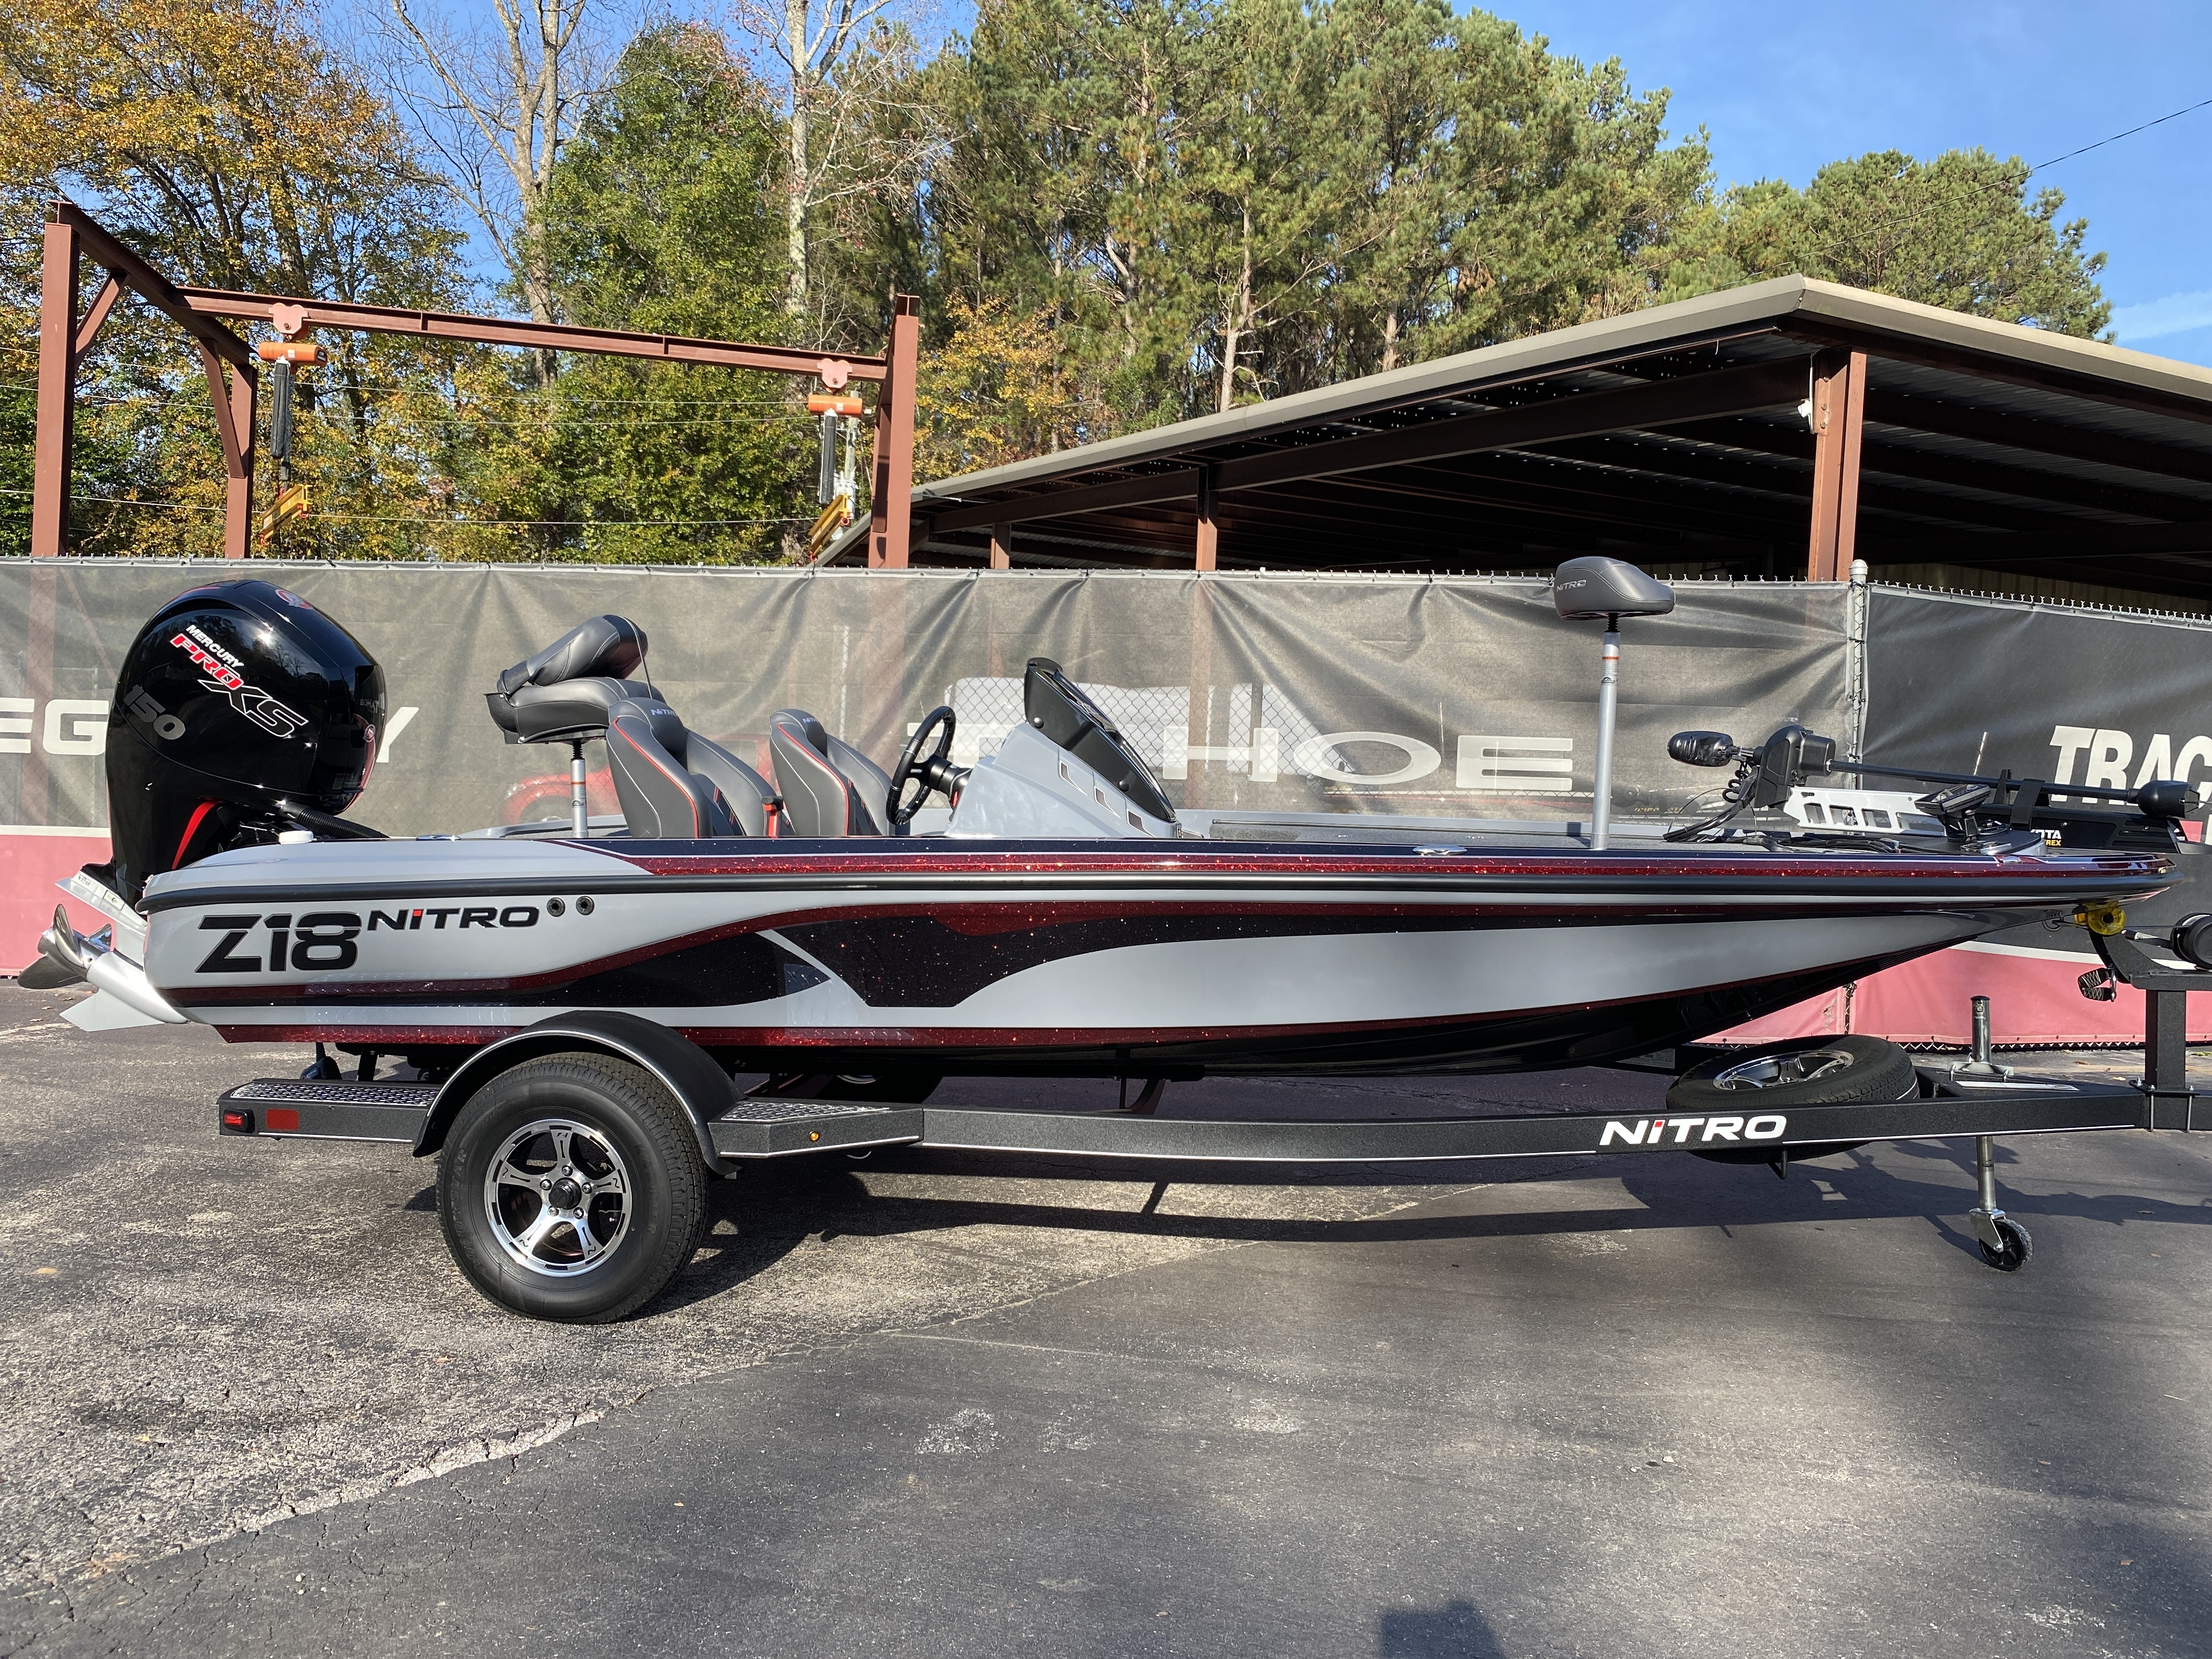 2021 Nitro boat for sale, model of the boat is Z18 H1 & Image # 14 of 28